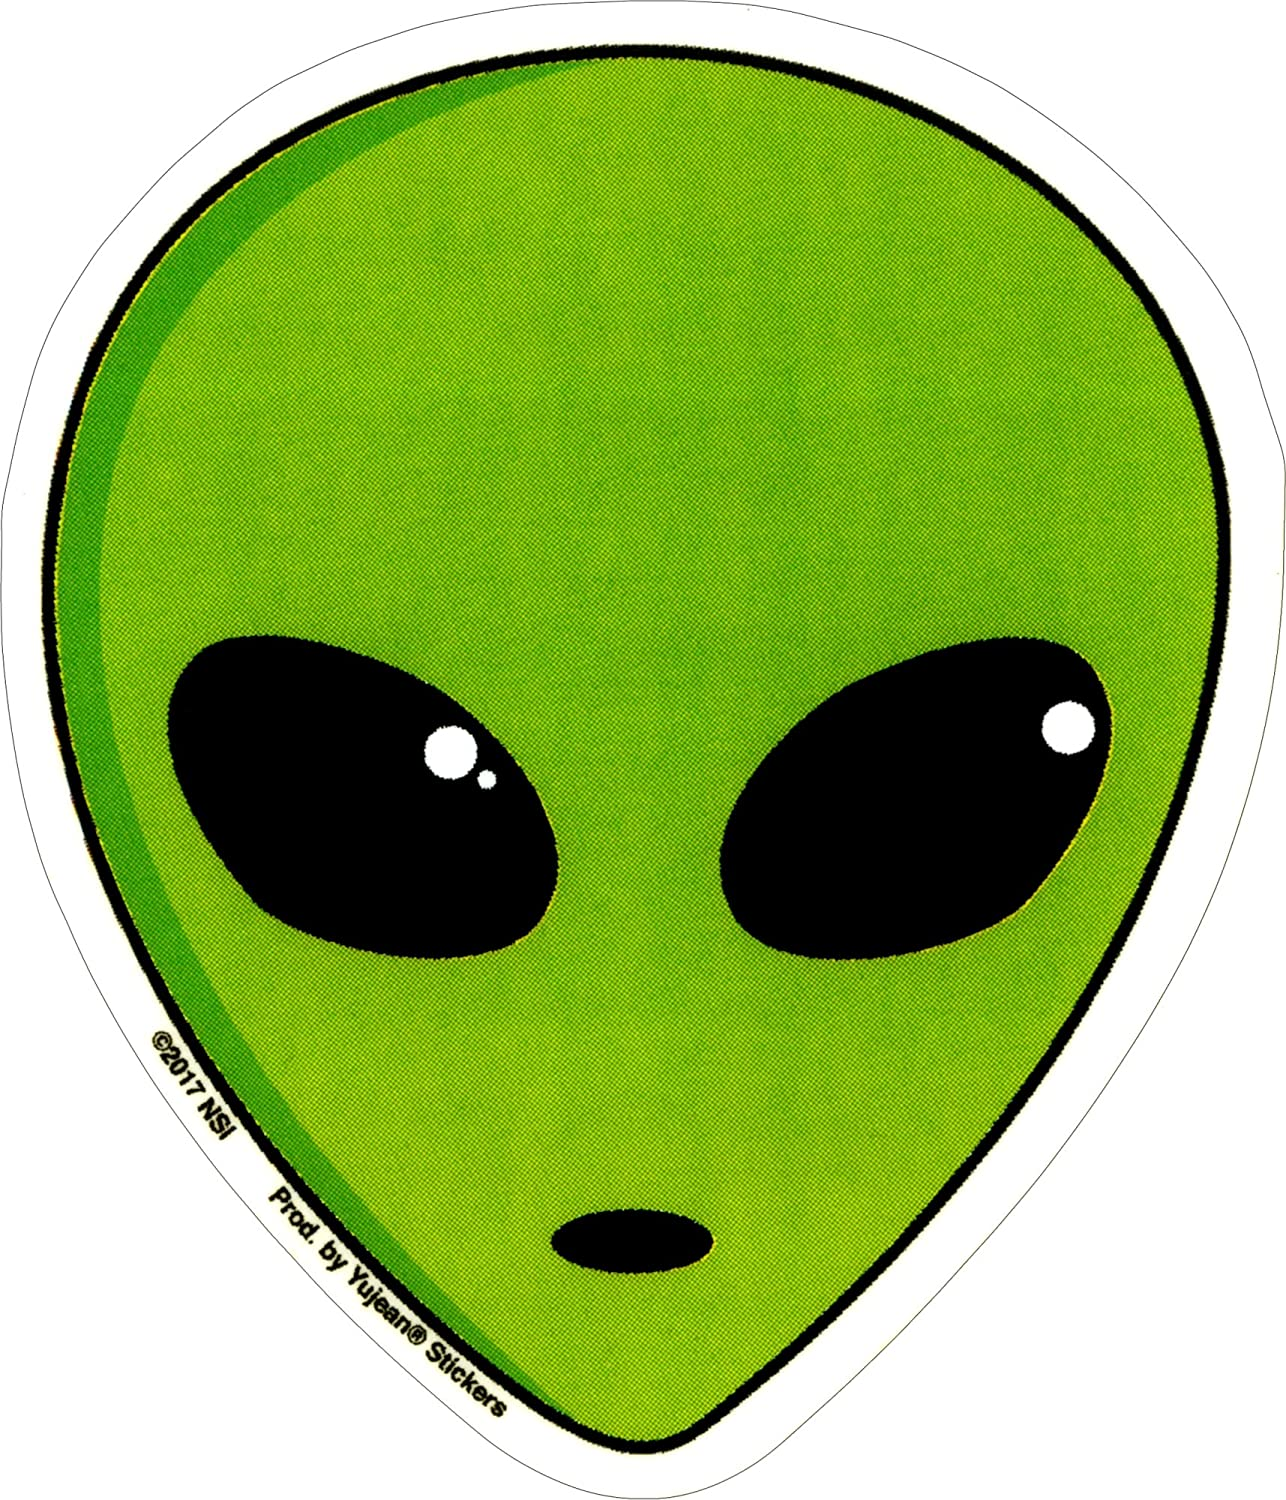 Amazon Com Alien Head Celestial Officially Licensed Original Artwork 3 75 X 4 25 Sticker Decal Automotive Here you can explore hq alien head transparent illustrations, icons and clipart with filter setting like polish your personal project or design with these alien head transparent png images, make it even. amazon com alien head celestial